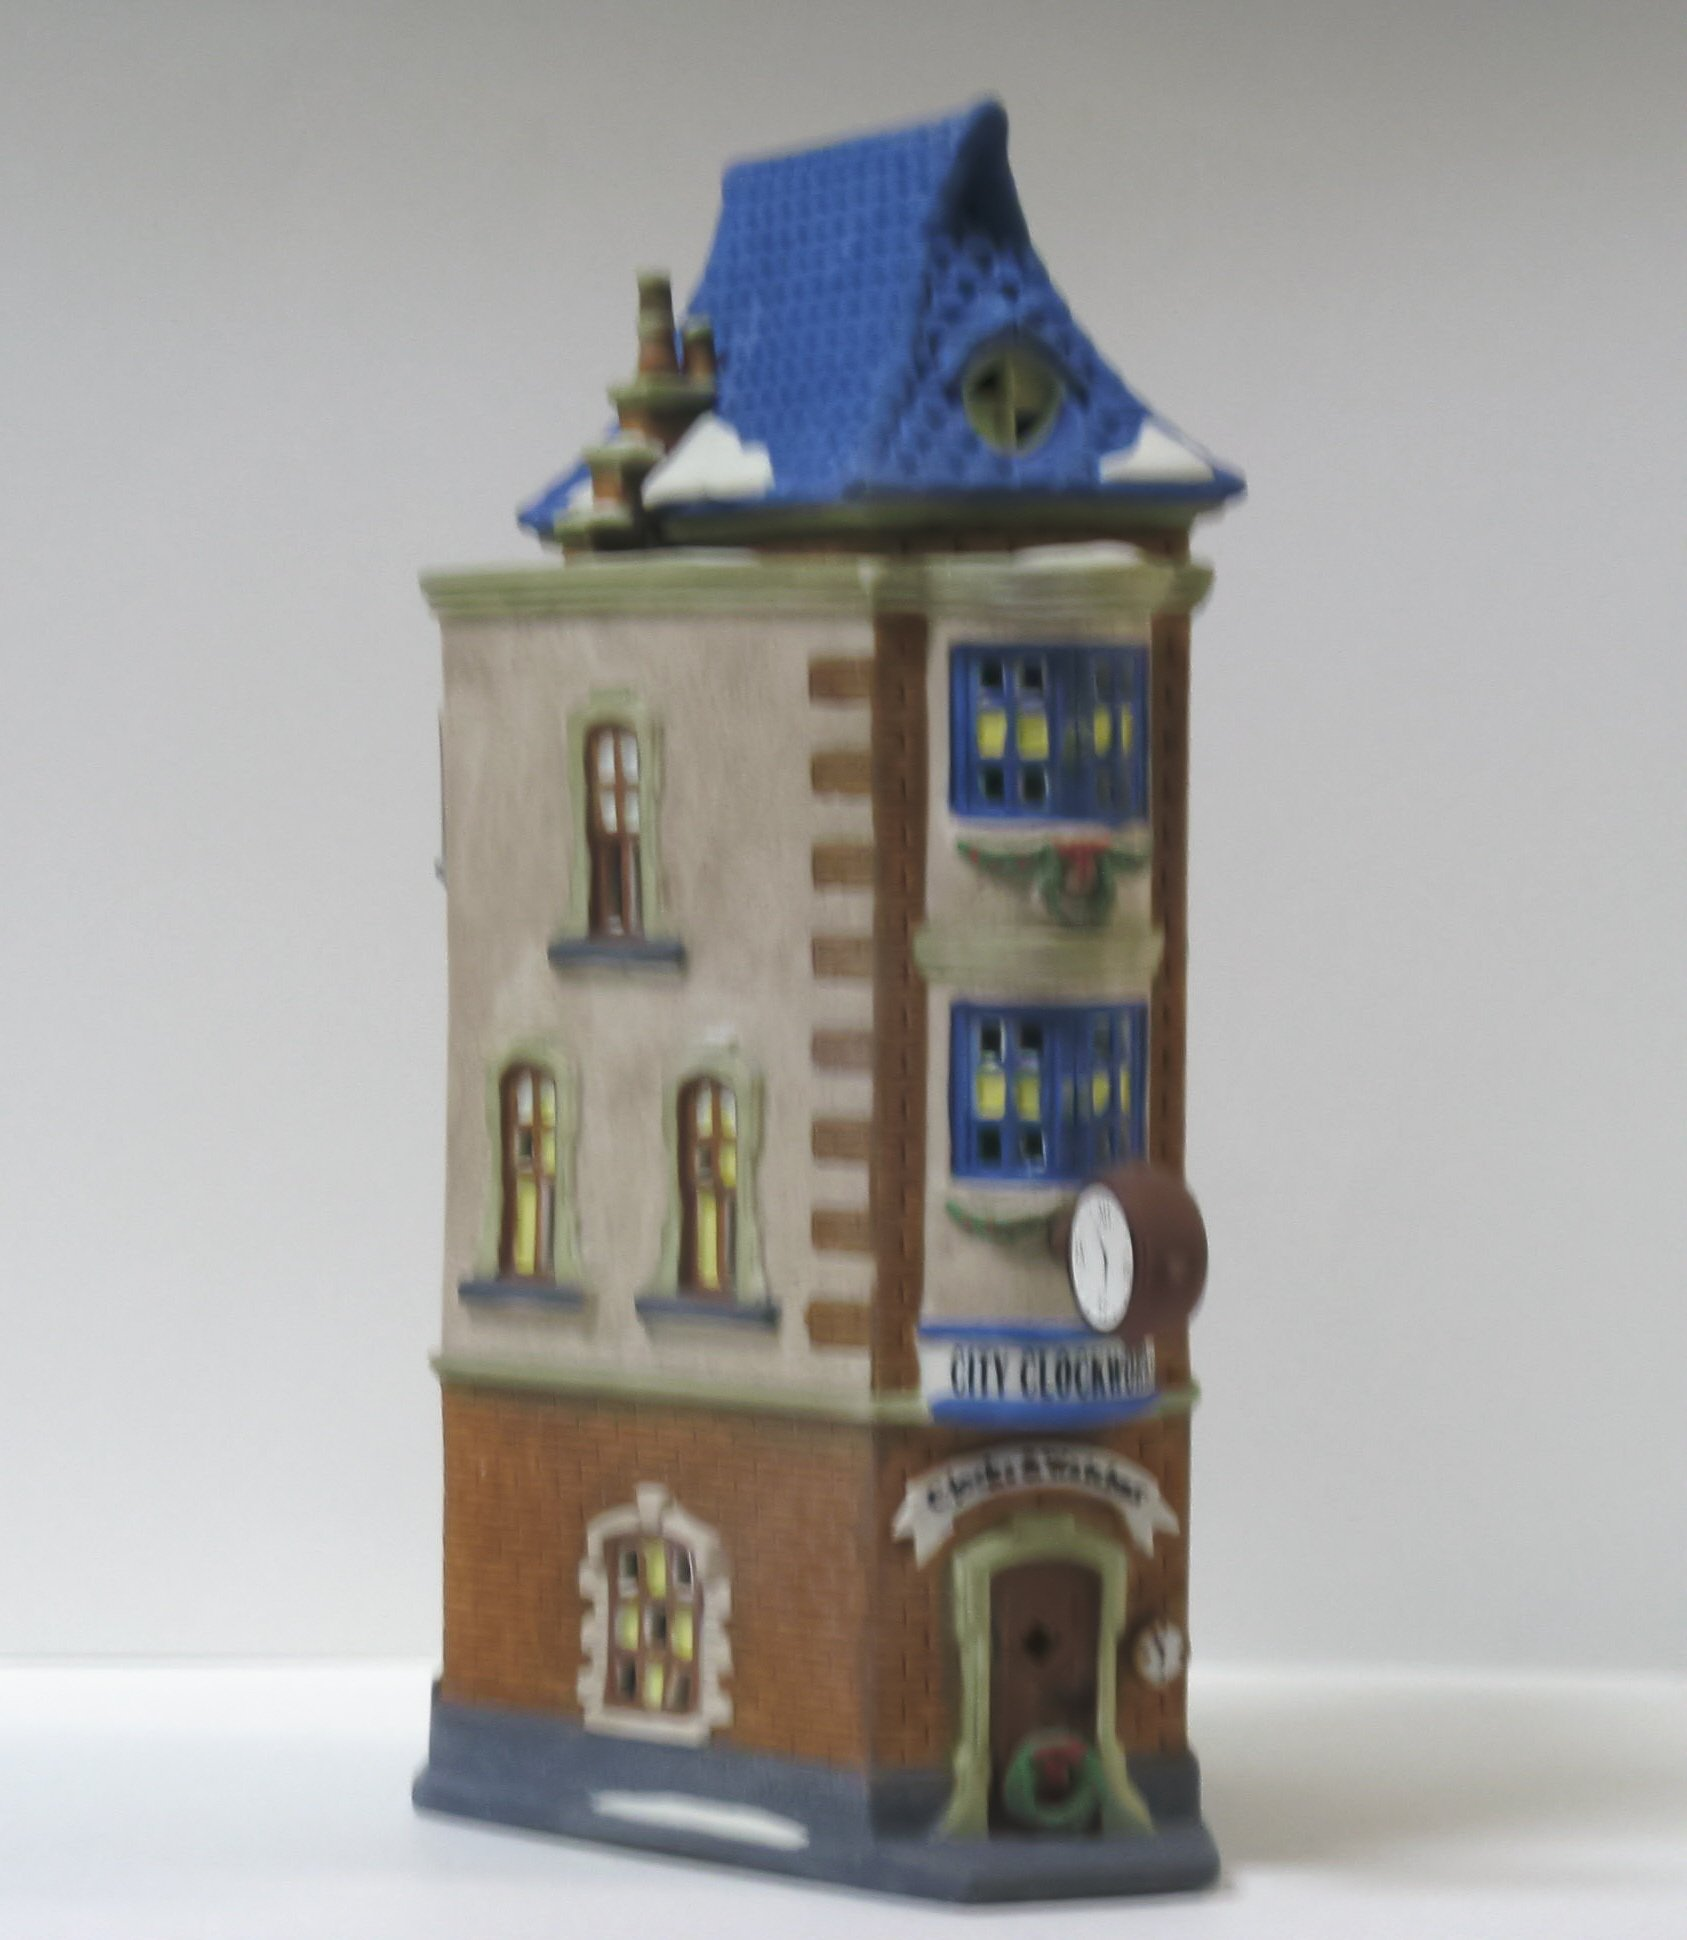 Department 56 Heritage Village Collection ; Christmas in the City Series ; City Clockworks ; Handpainted Porcelain 5531-0